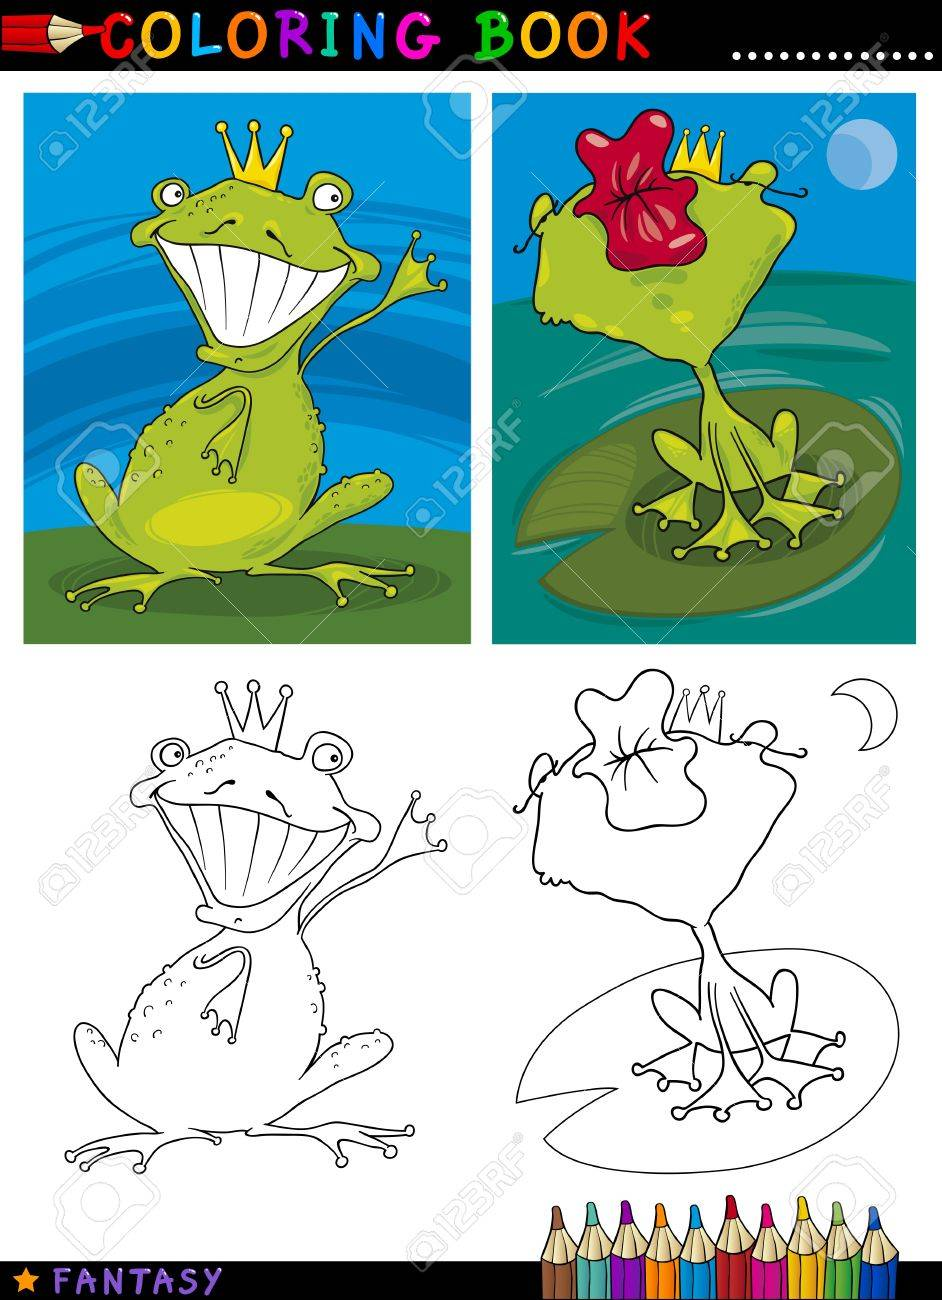 Coloring Book or Page Cartoon Illustration of Frog Prince Fairytale Characters Stock Vector - 15924332